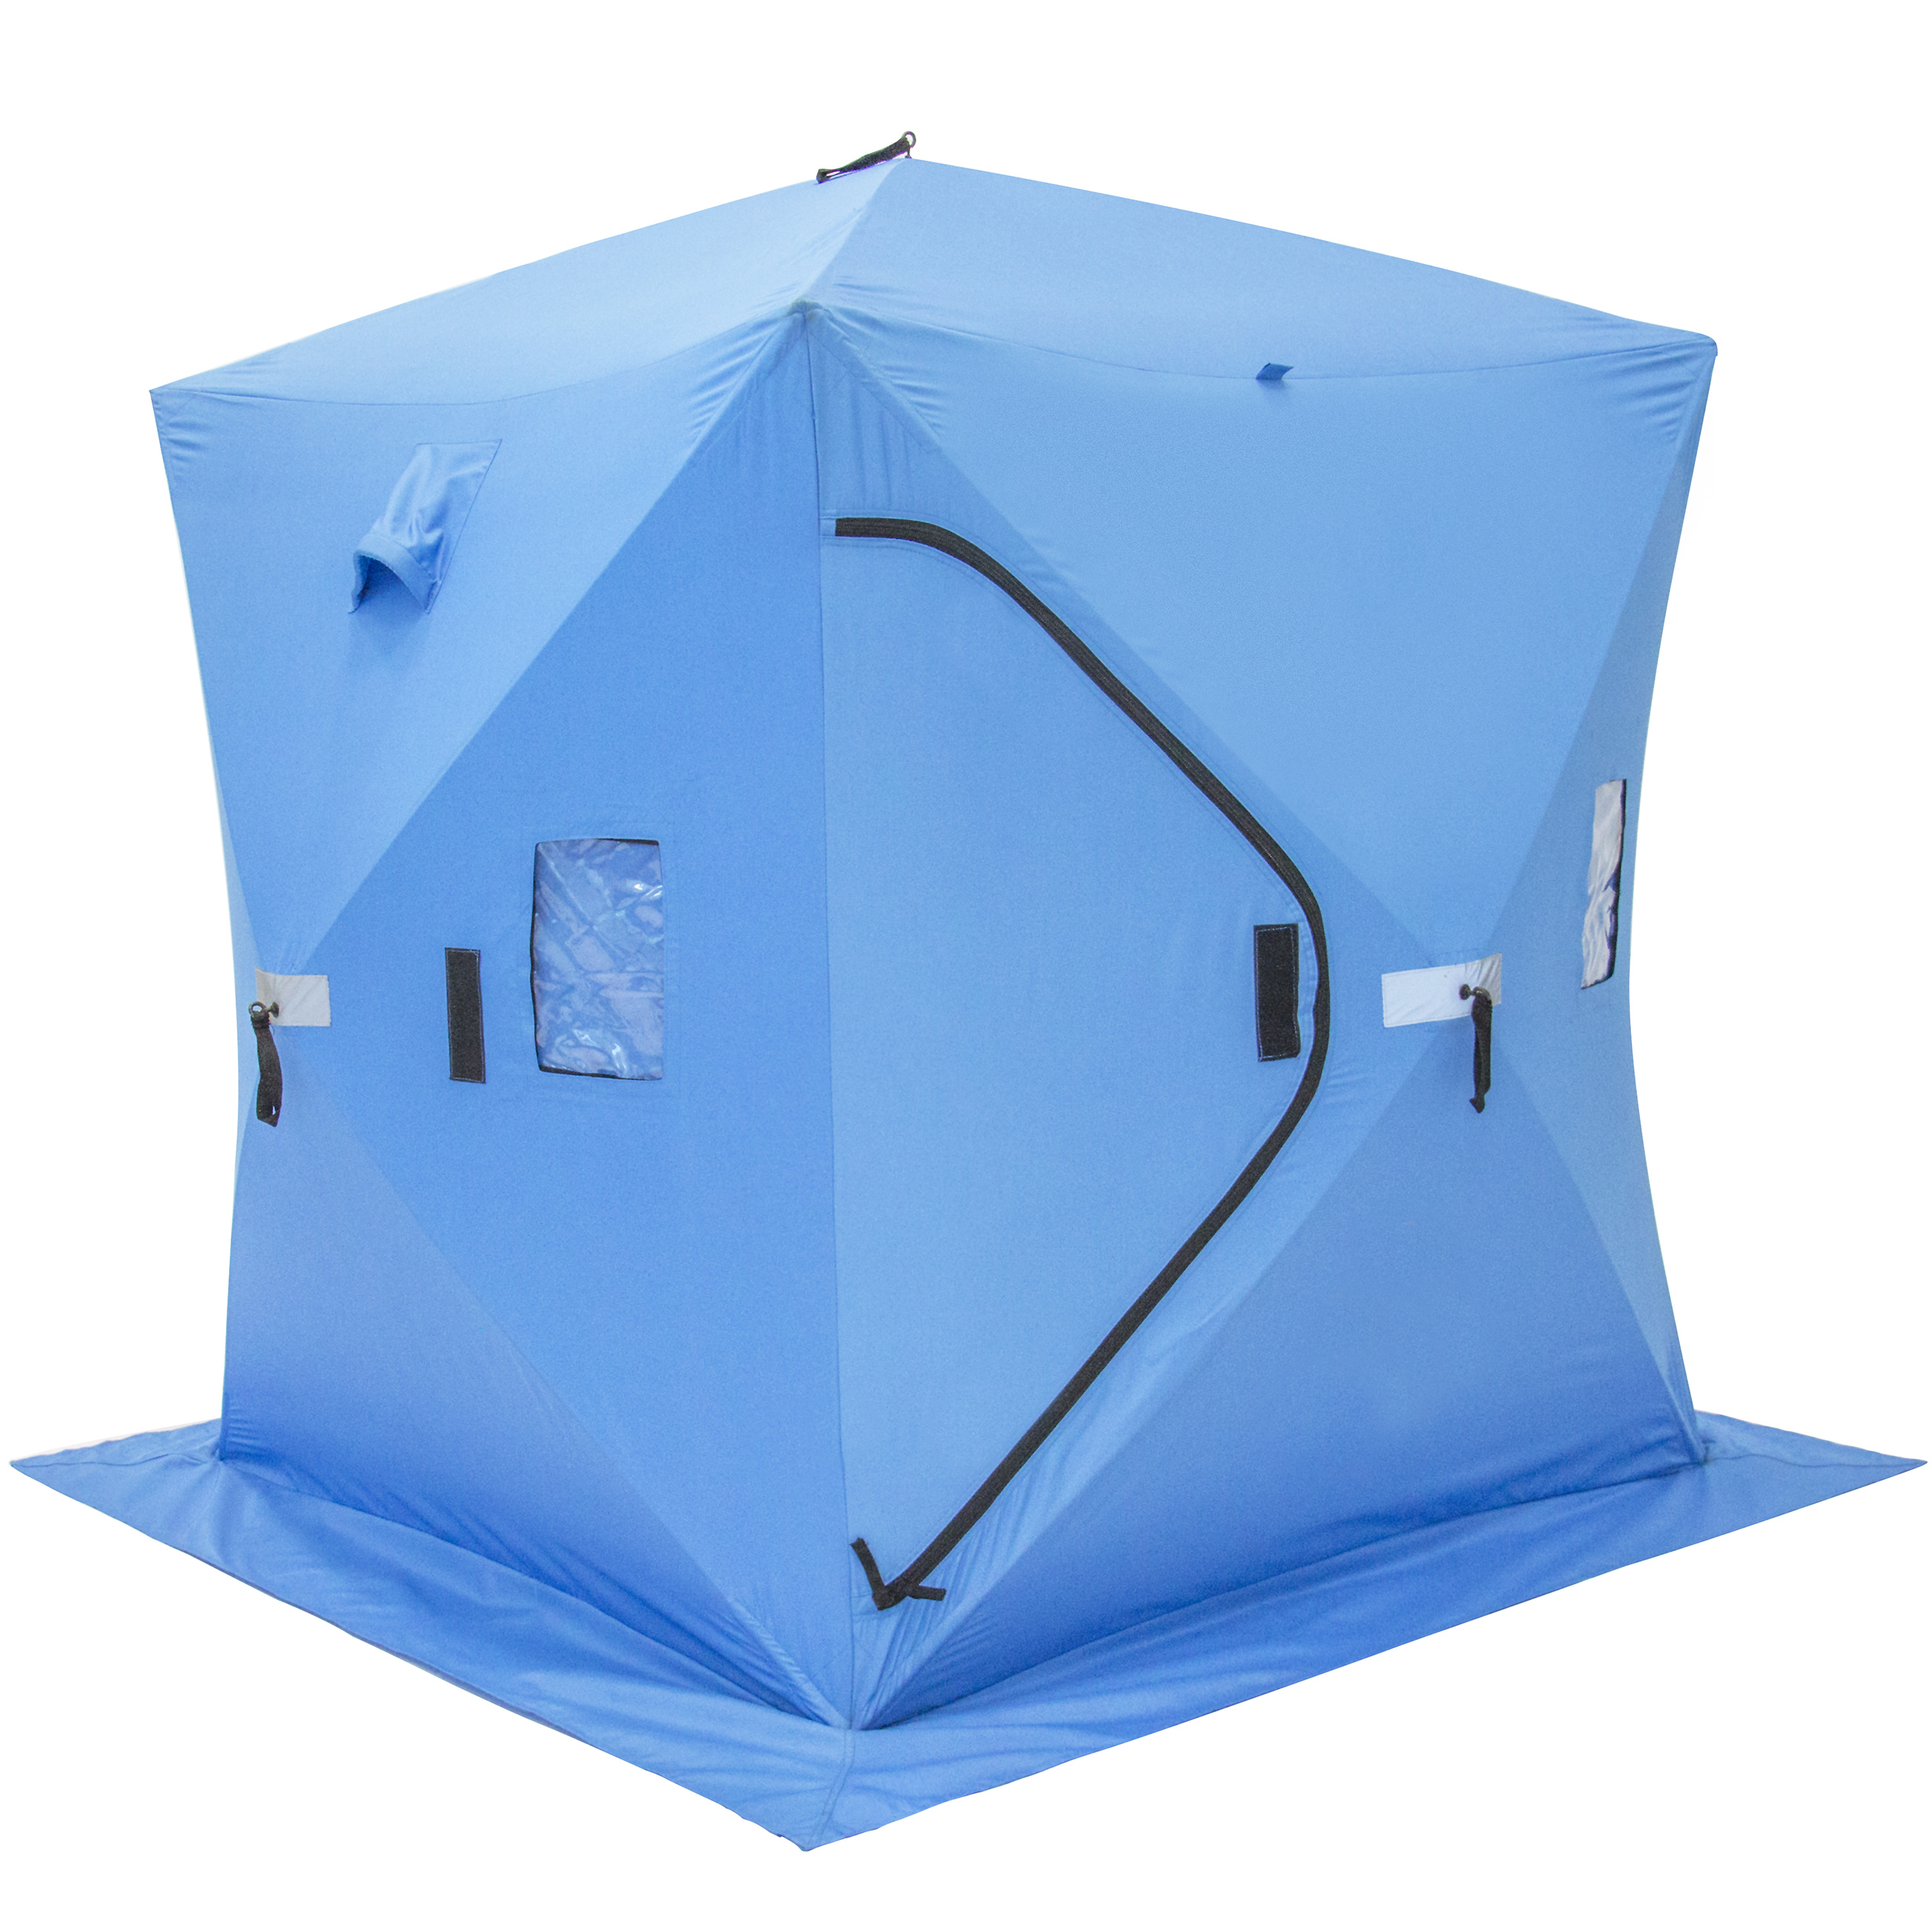 Ice Fishing Shelfter Tent Portable Pop Up Ice Fishing House Blue Waterproof by Best Choice Products